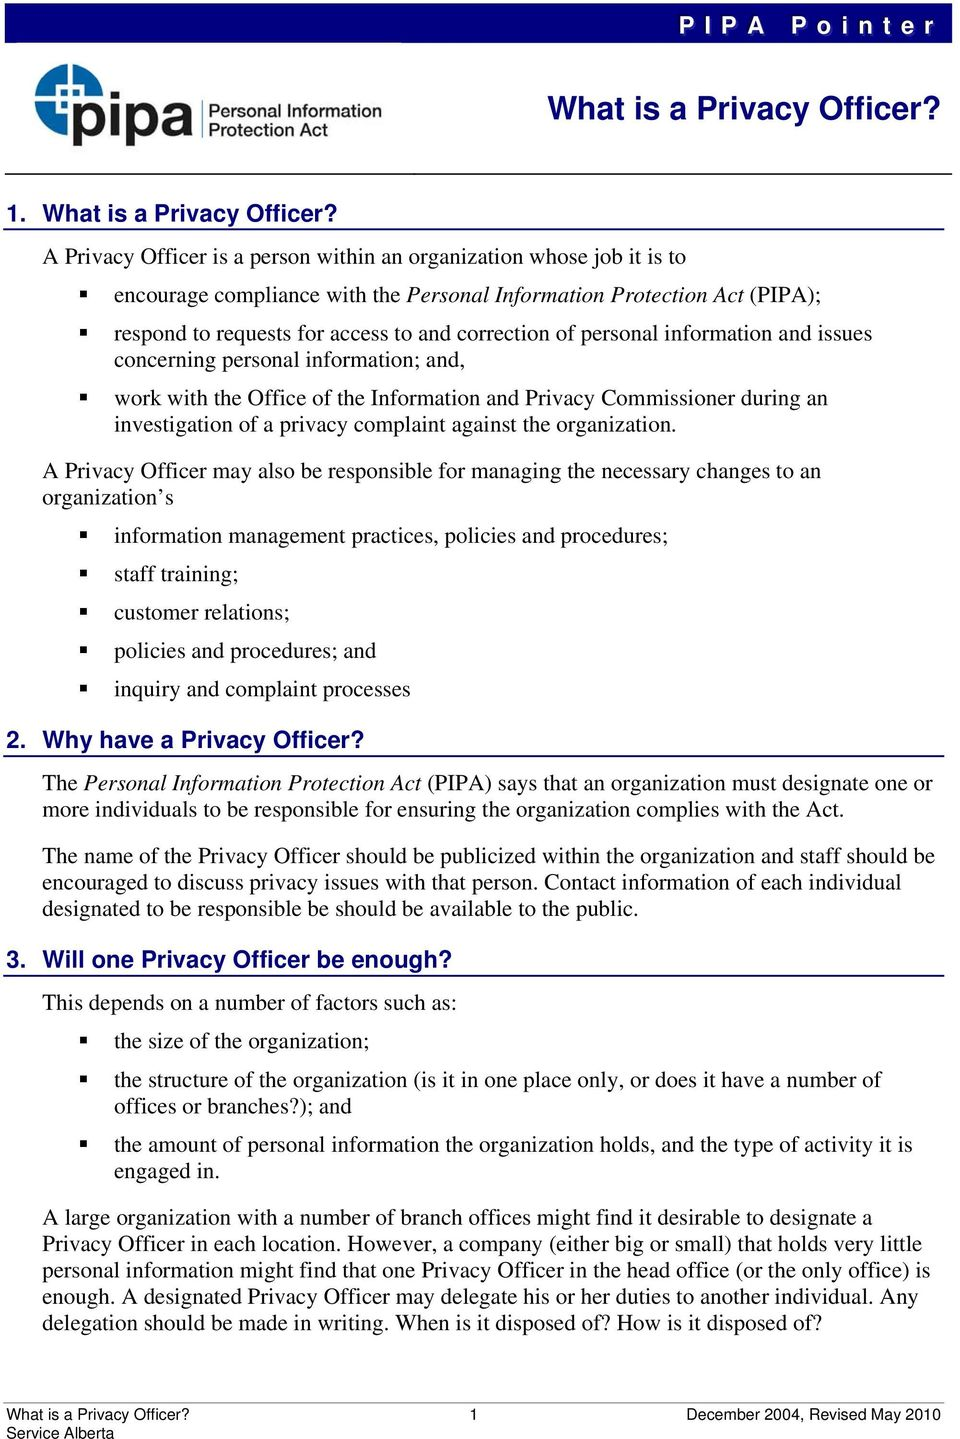 A Privacy Officer is a person within an organization whose job it is to encourage compliance with the Personal Information Protection Act (PIPA); respond to requests for access to and correction of